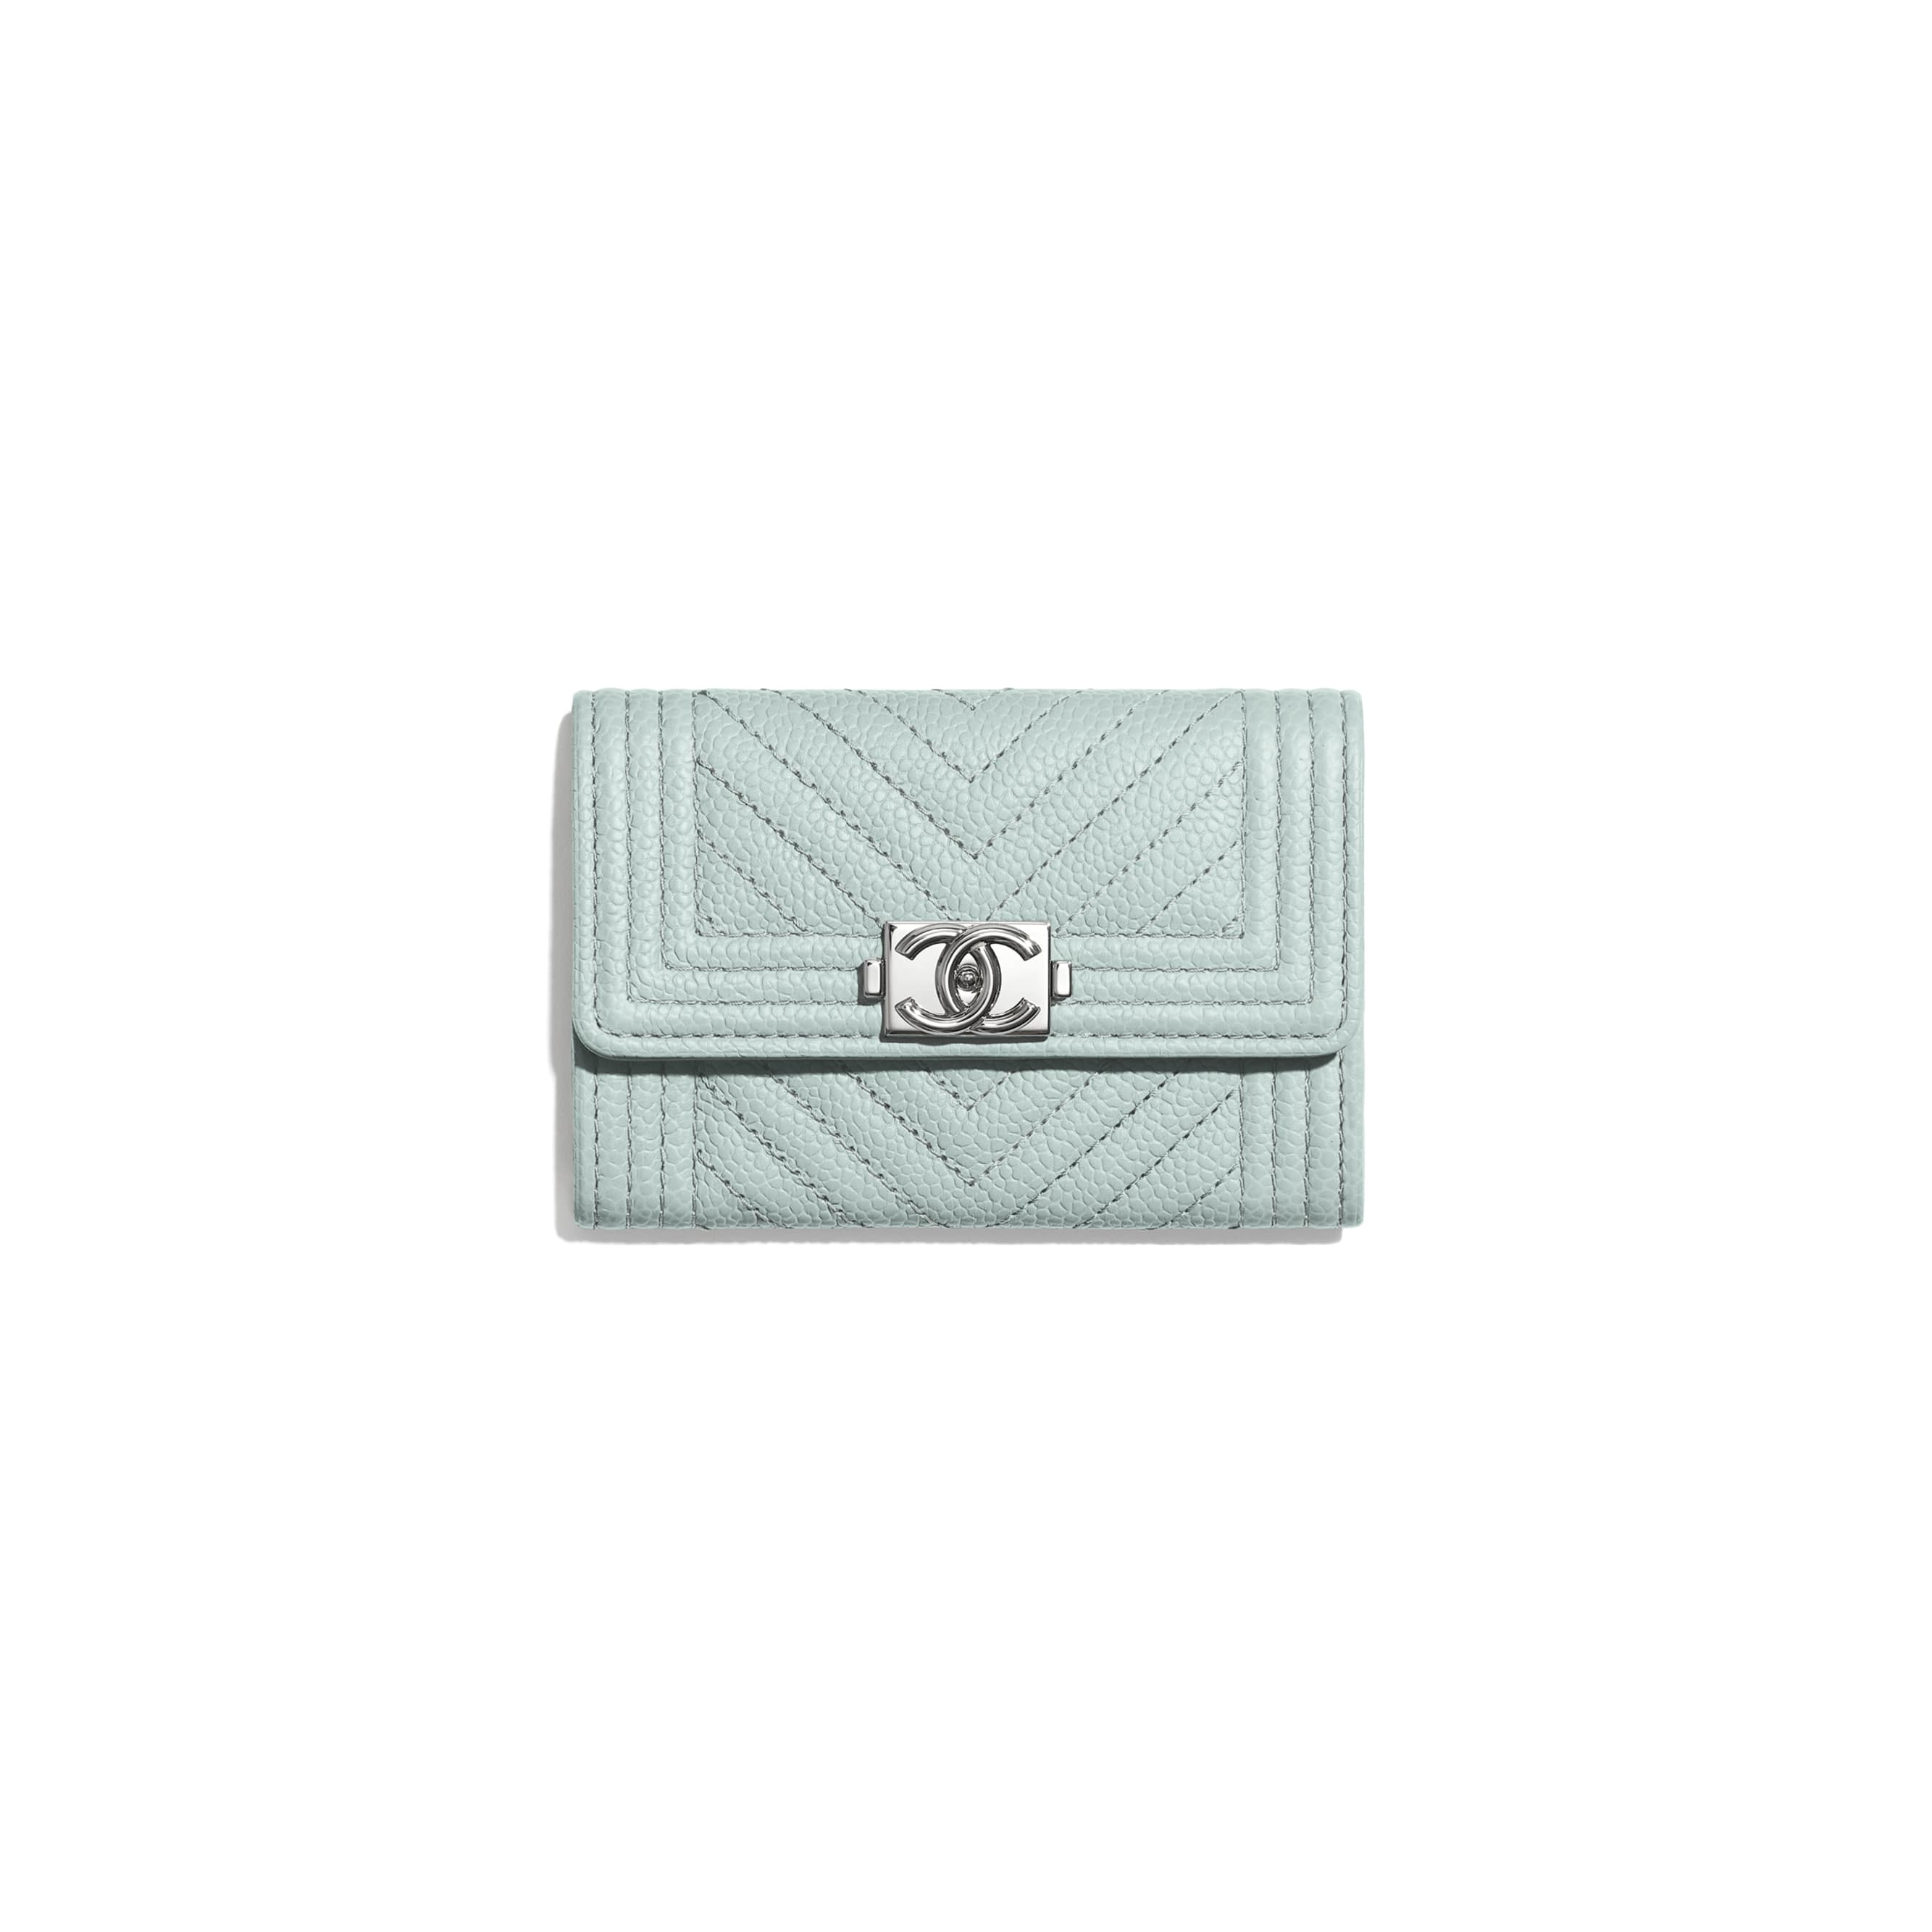 BOY CHANEL Flap Card Holder - Light Blue - Shiny Grained Calfskin & Silver-Tone Metal - CHANEL - Default view - see standard sized version